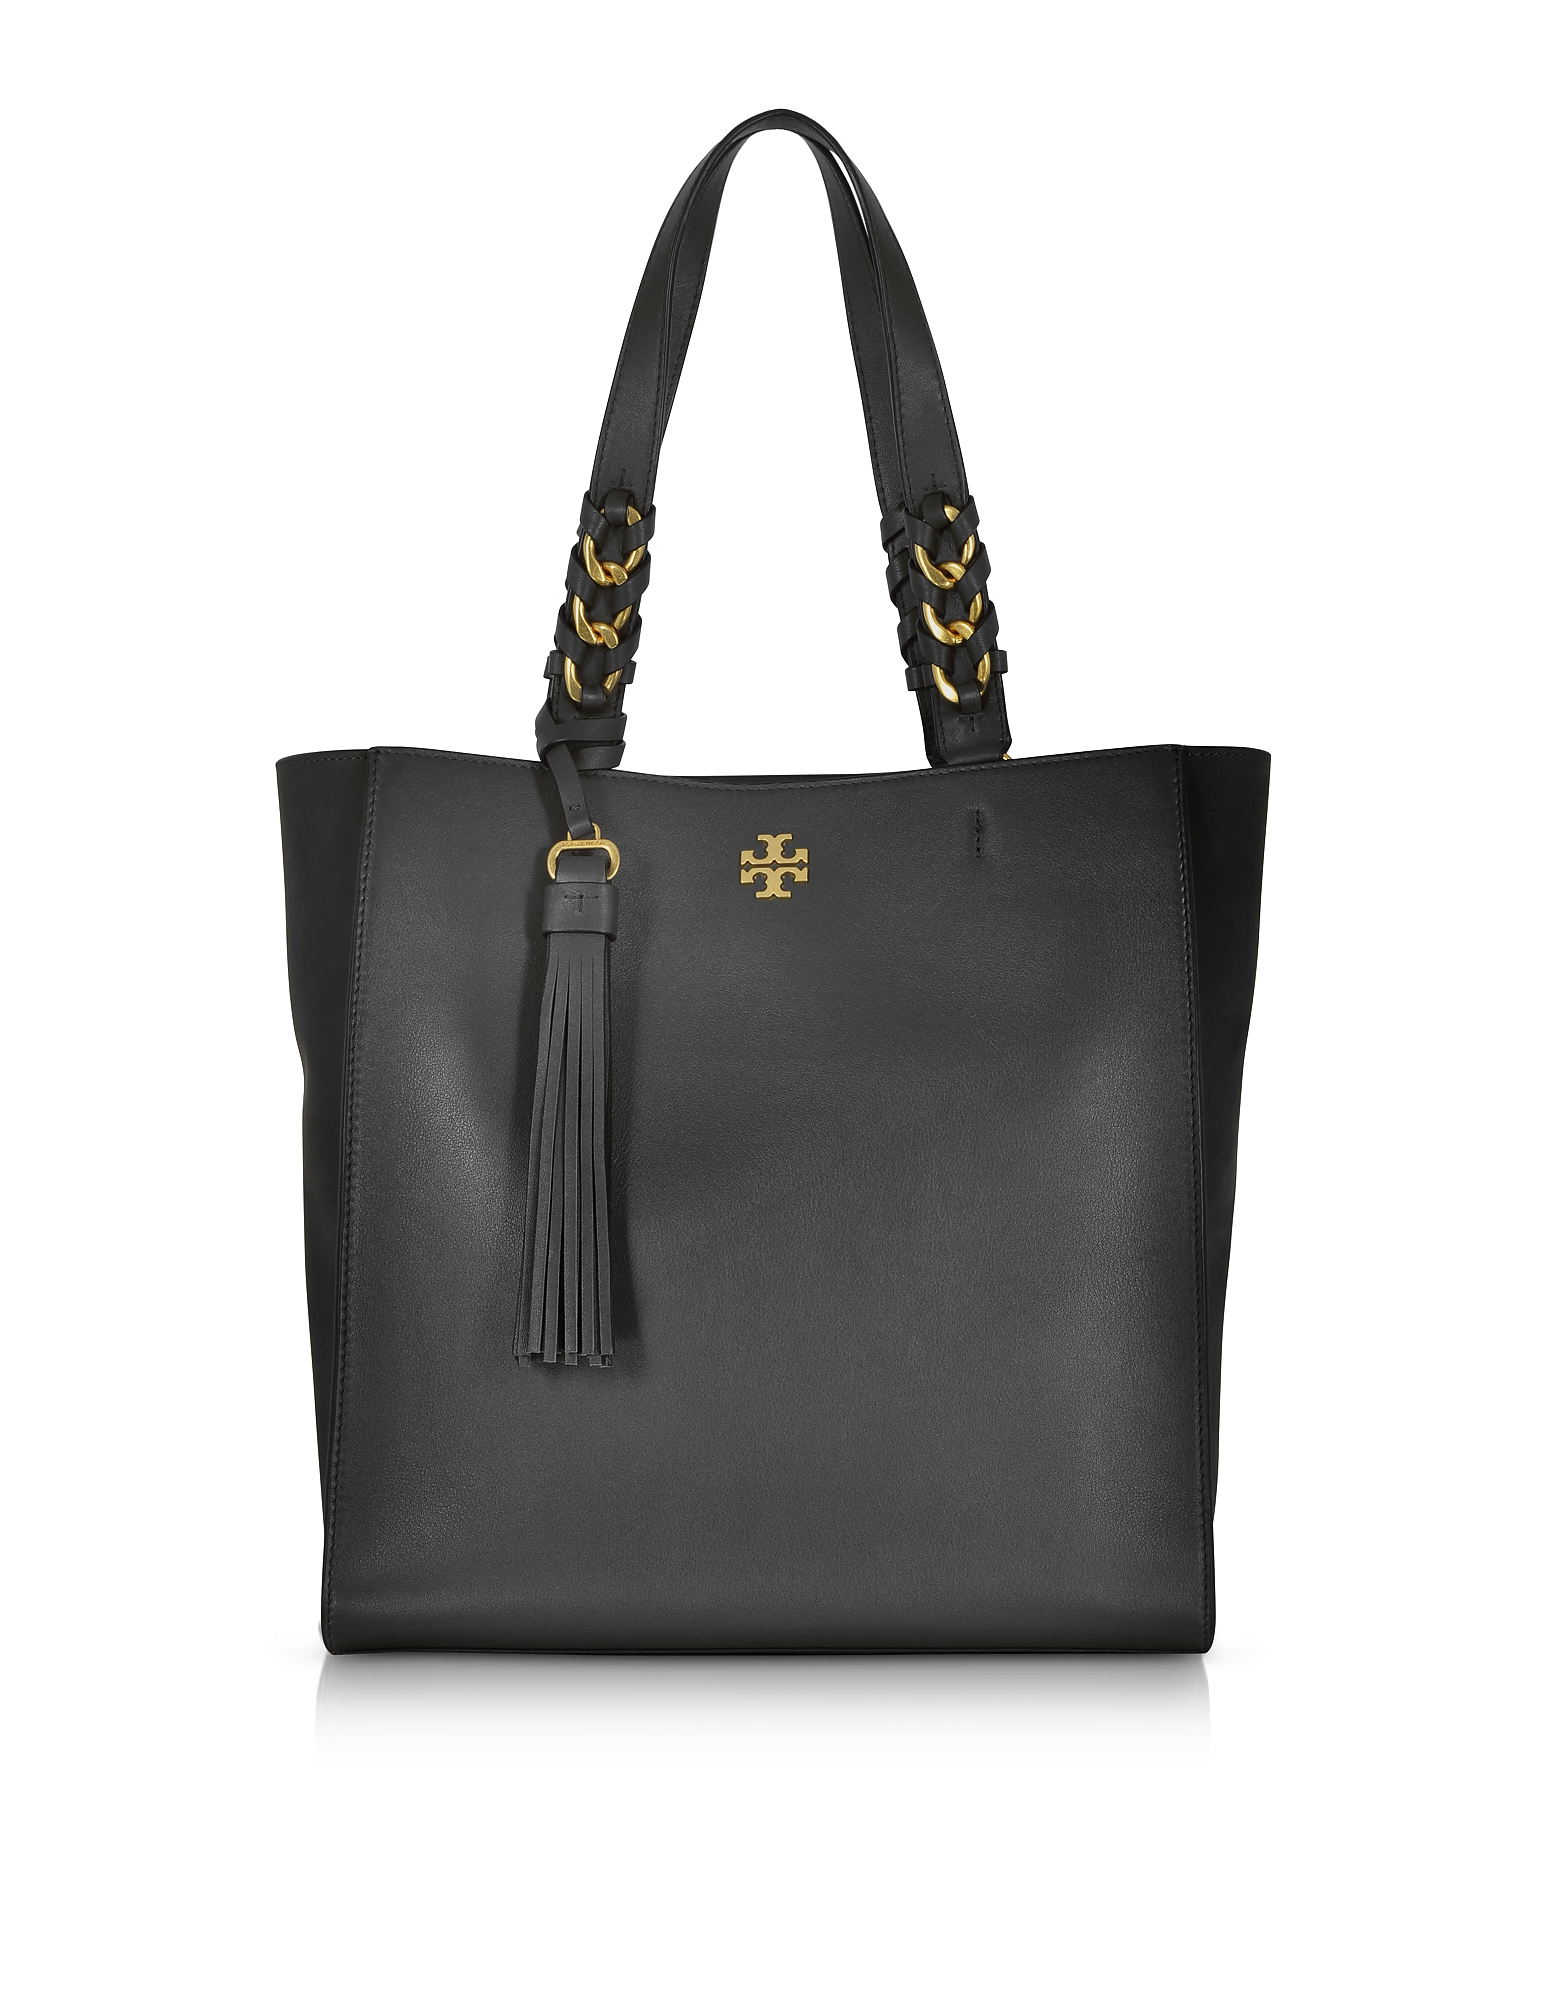 Tory Burch Handbags, Brooke Black Leather Tote Bag w/Suede Trims